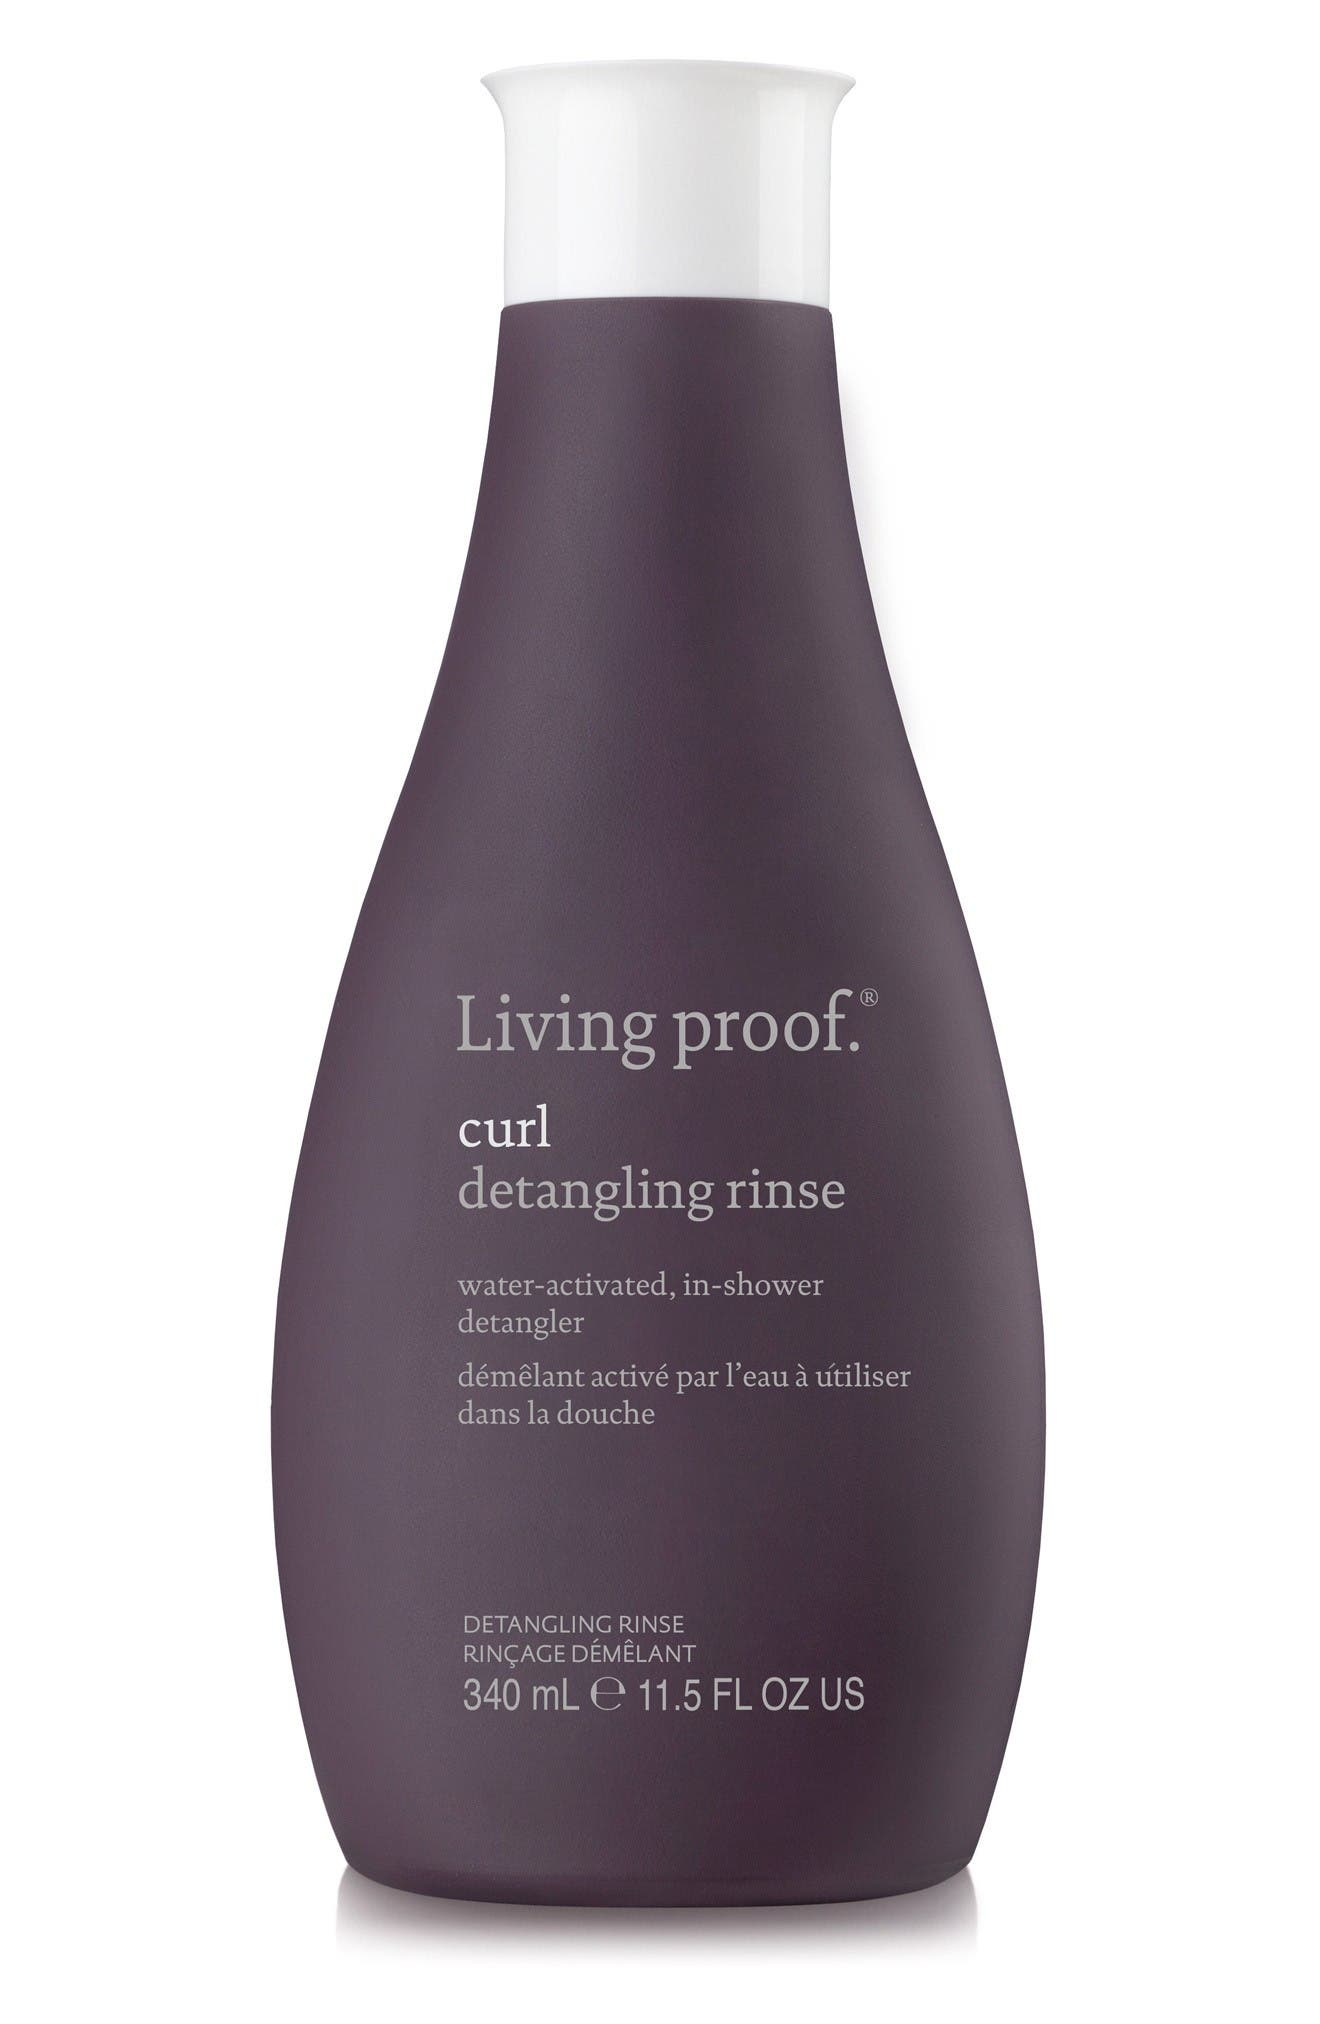 Living proof® Curl Detangling Rinse